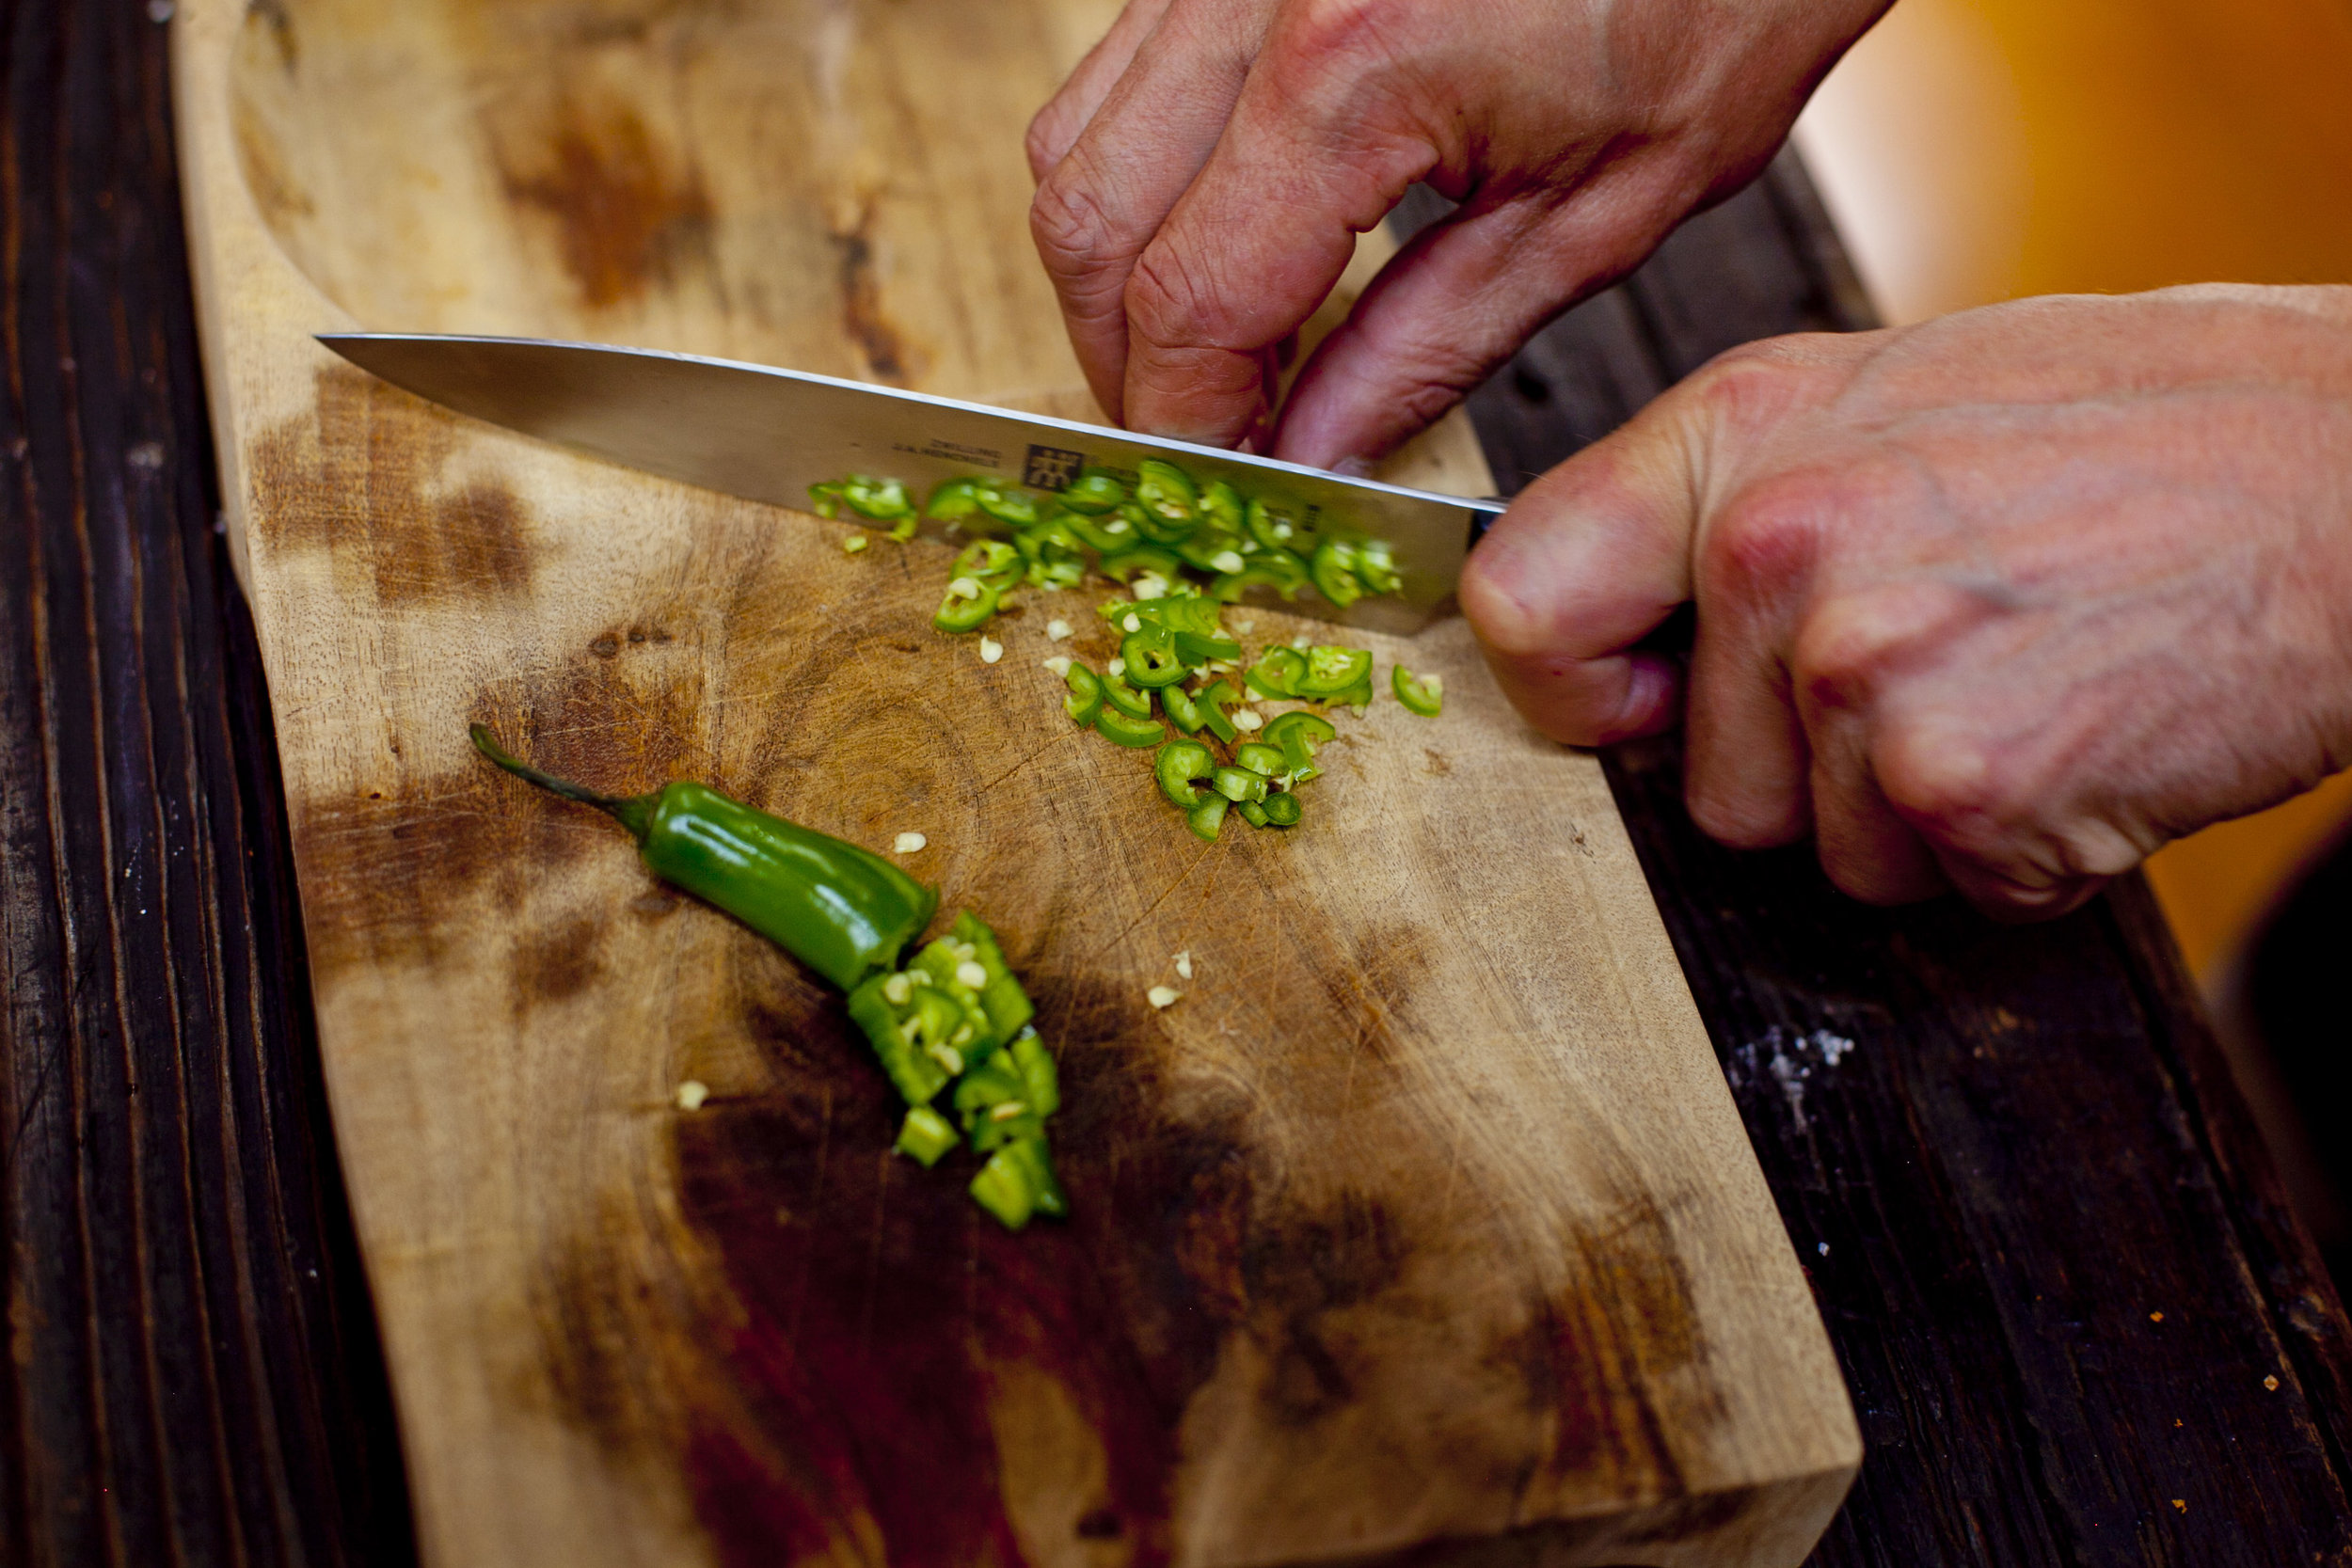 Chopping hot peppers.